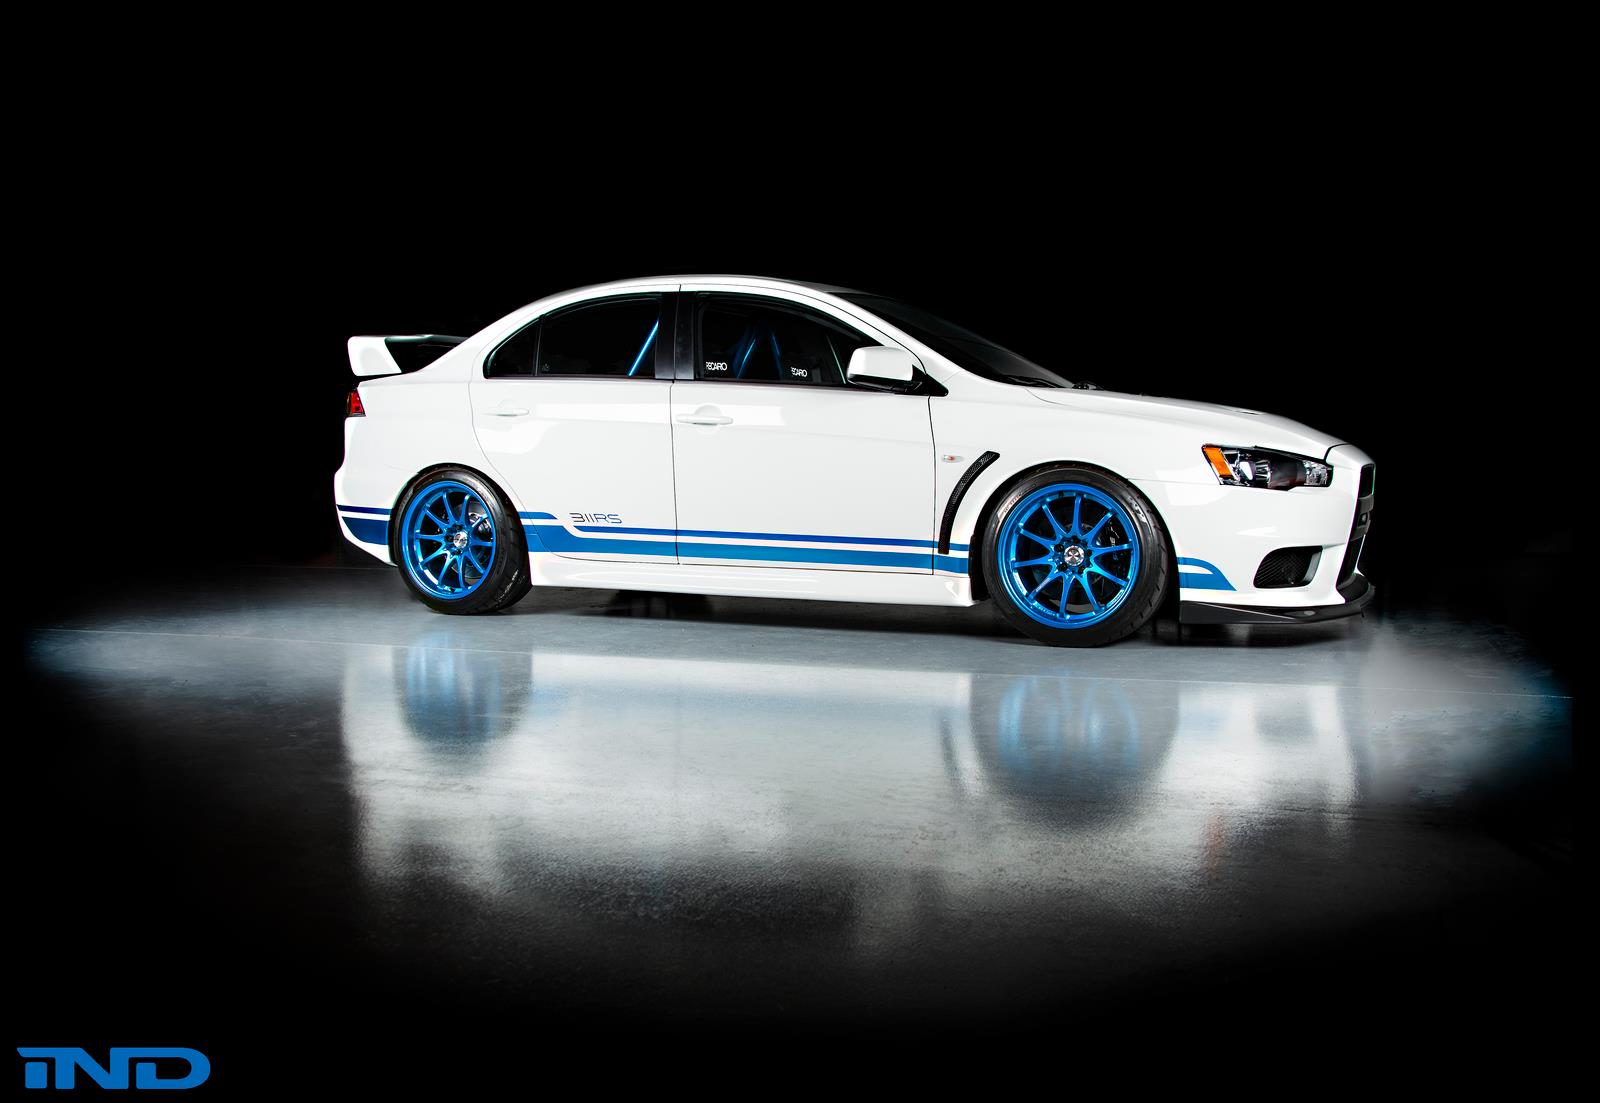 limited production ind mitsubishi evo x 311rs released